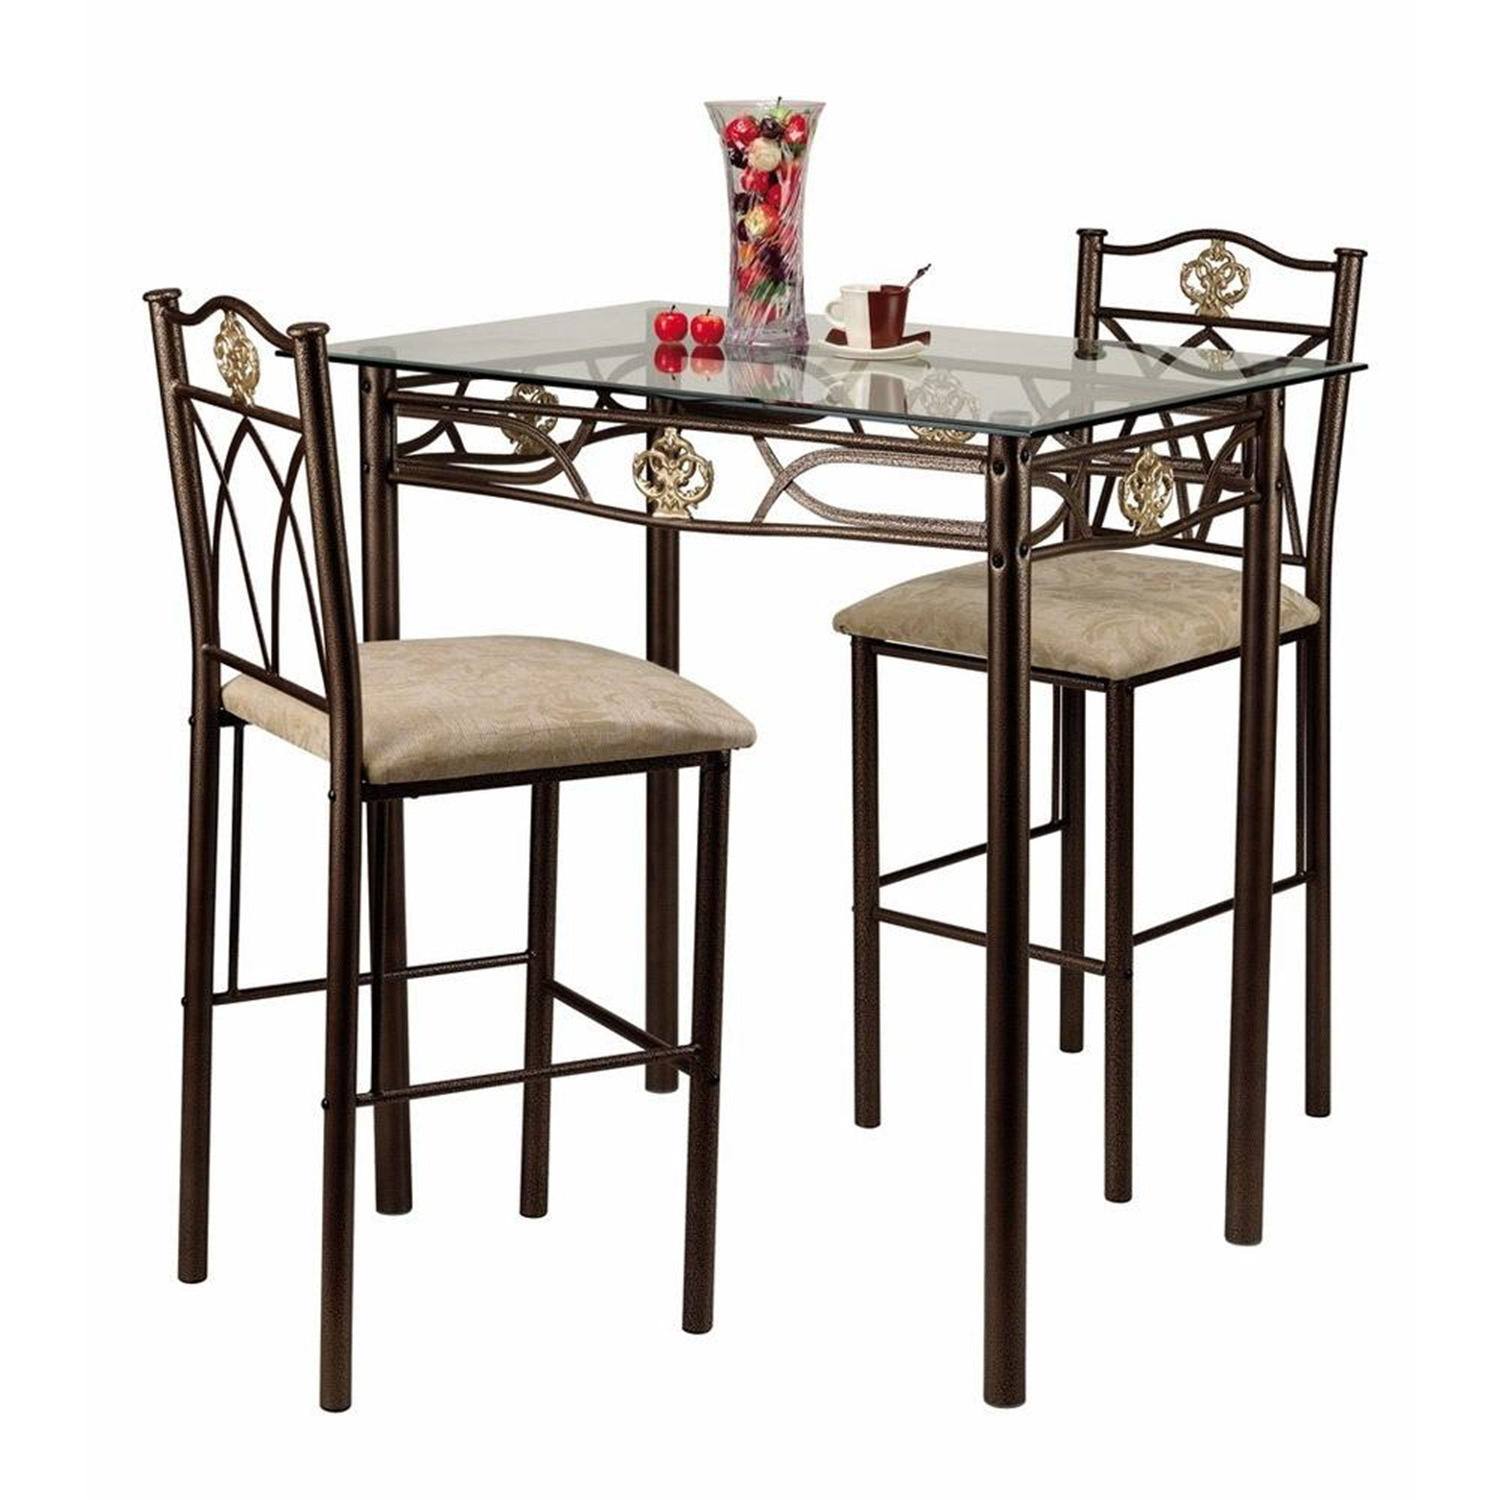 Home source 3 pc bistro set by oj commerce crownbistro 218 99